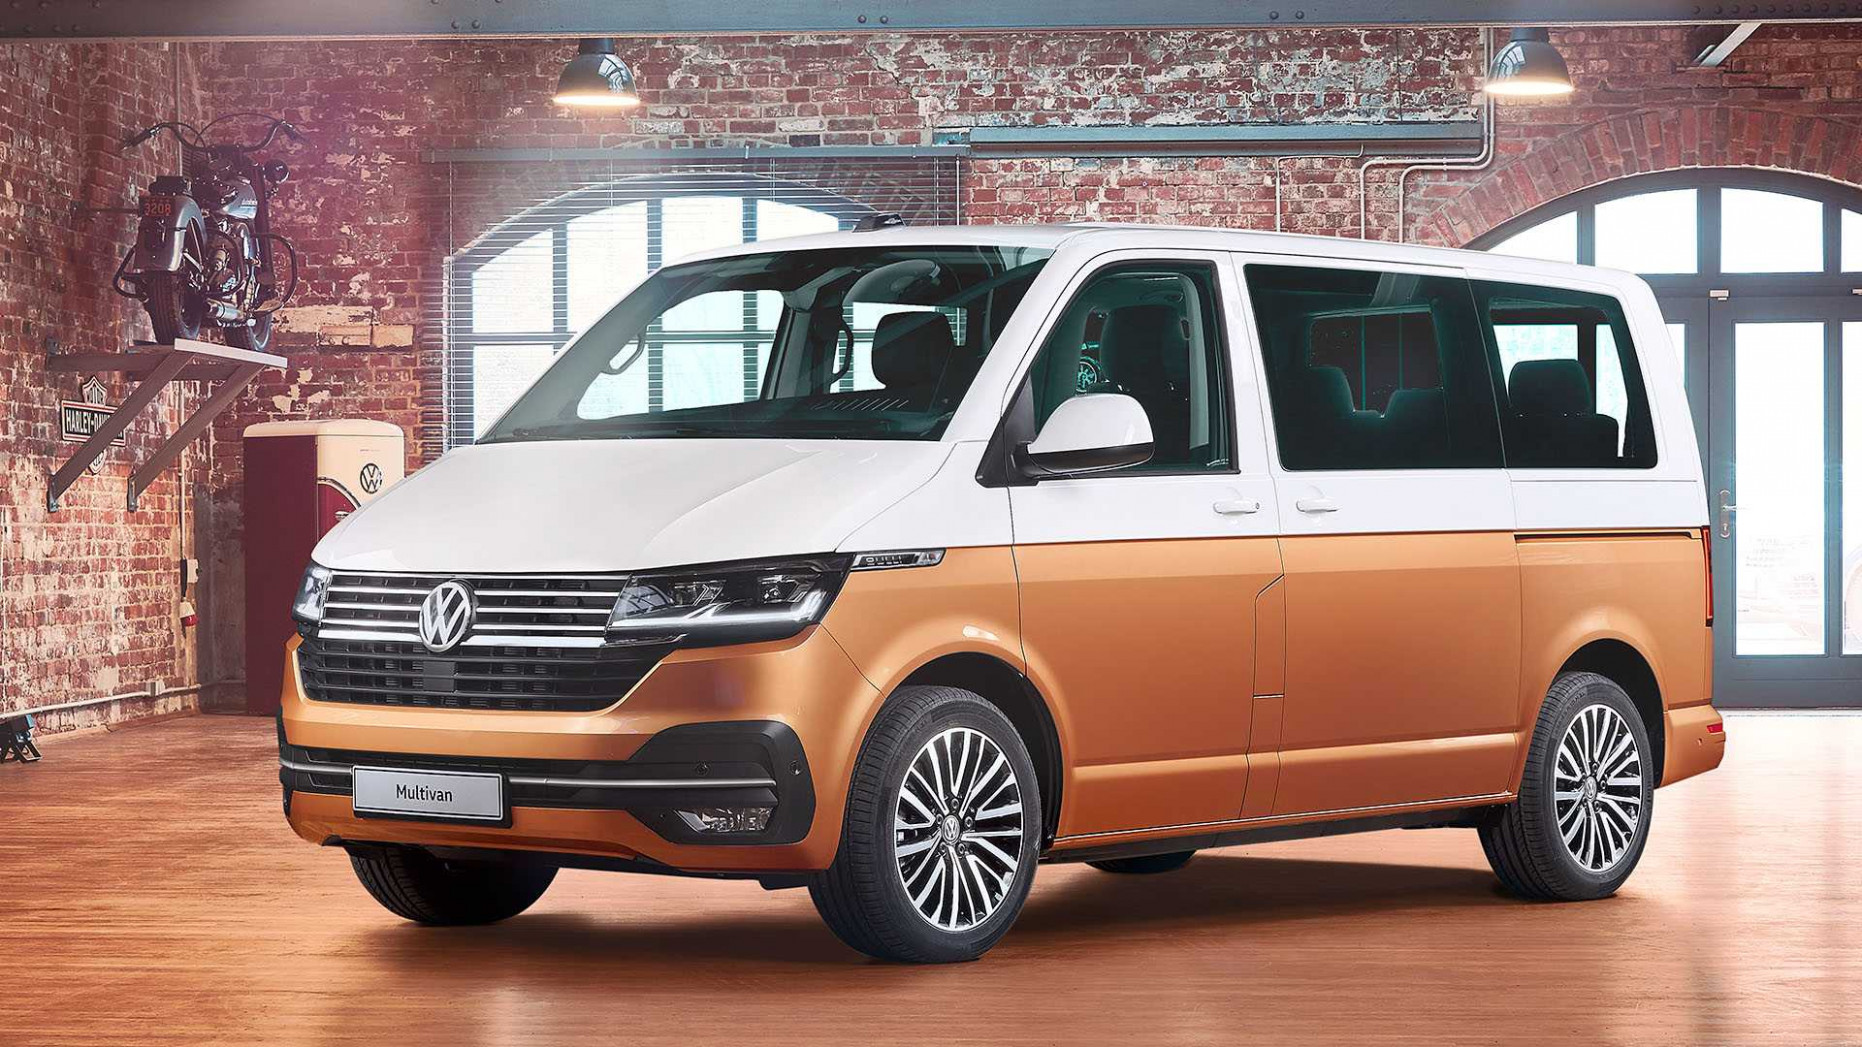 Offiziell: VW T12 kommt 12 auch als Plug-in-Hybrid